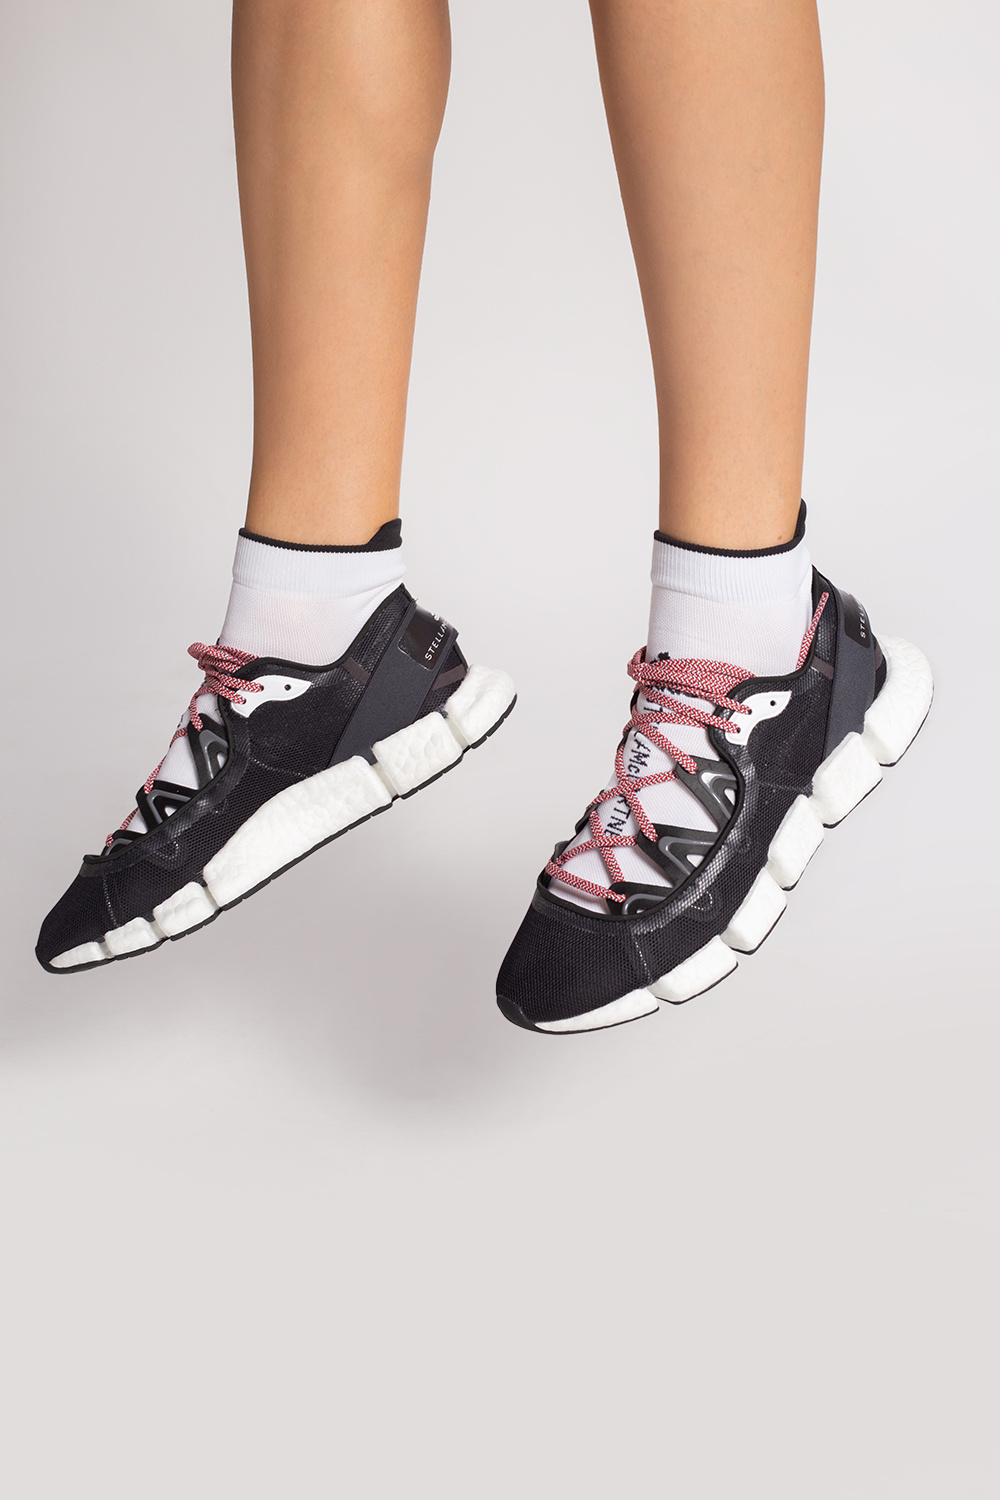 ADIDAS by Stella McCartney 'Climacool Vento' sneakers